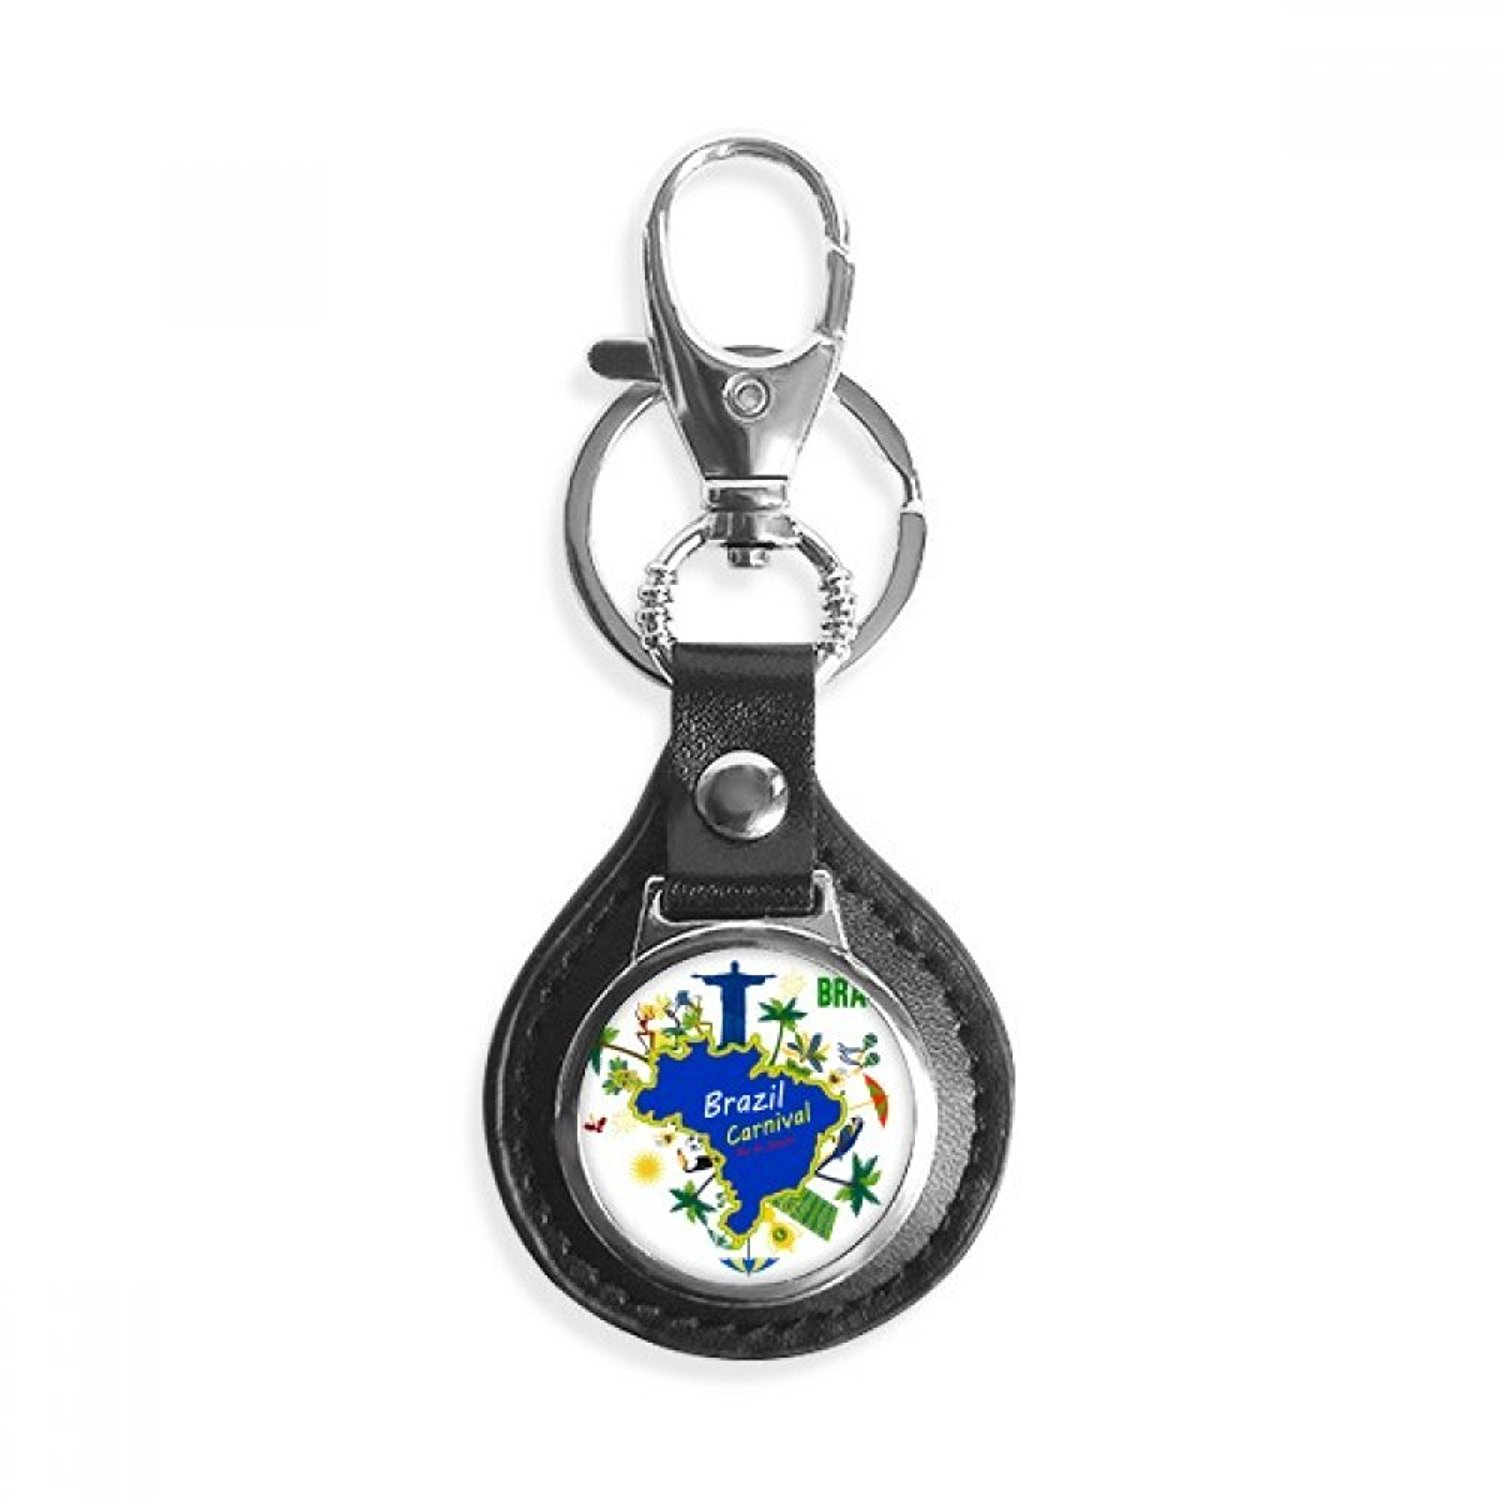 Mount Corcovado Brazil Maps Brazil Carnival Leather Metal Key Chain Ring Car Keychain Gift